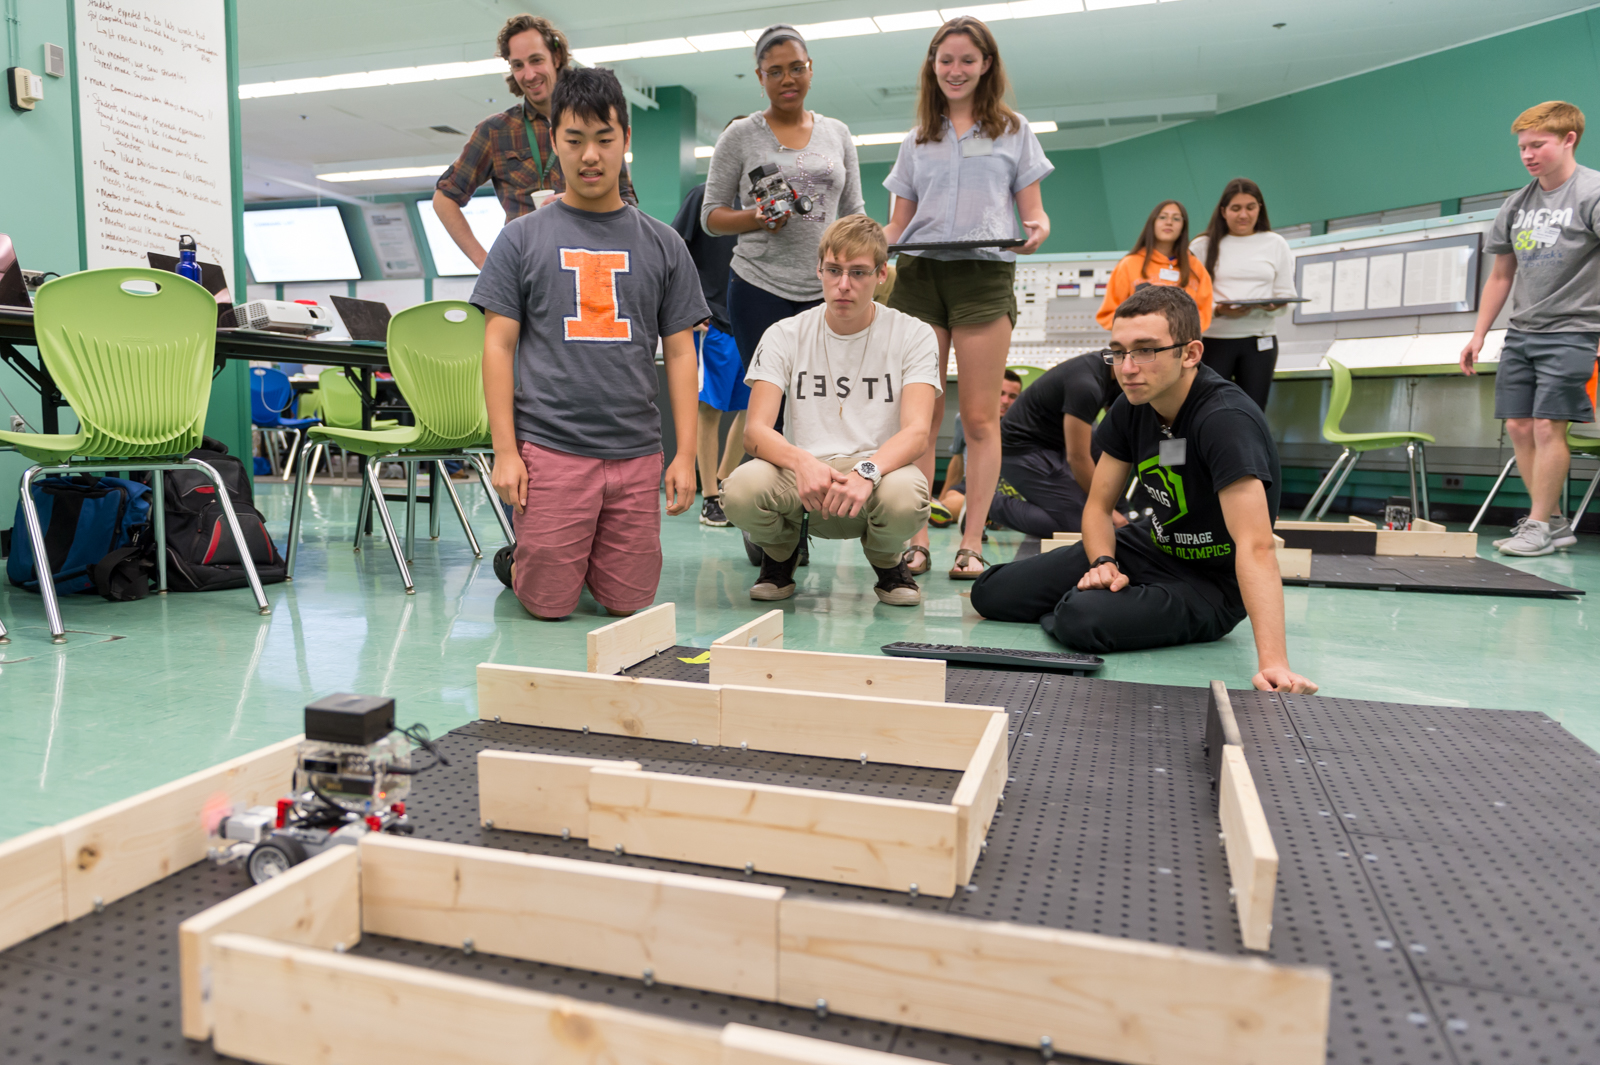 High schoolers monitor their robot's progress in the second maze on the final afternoon of camp.